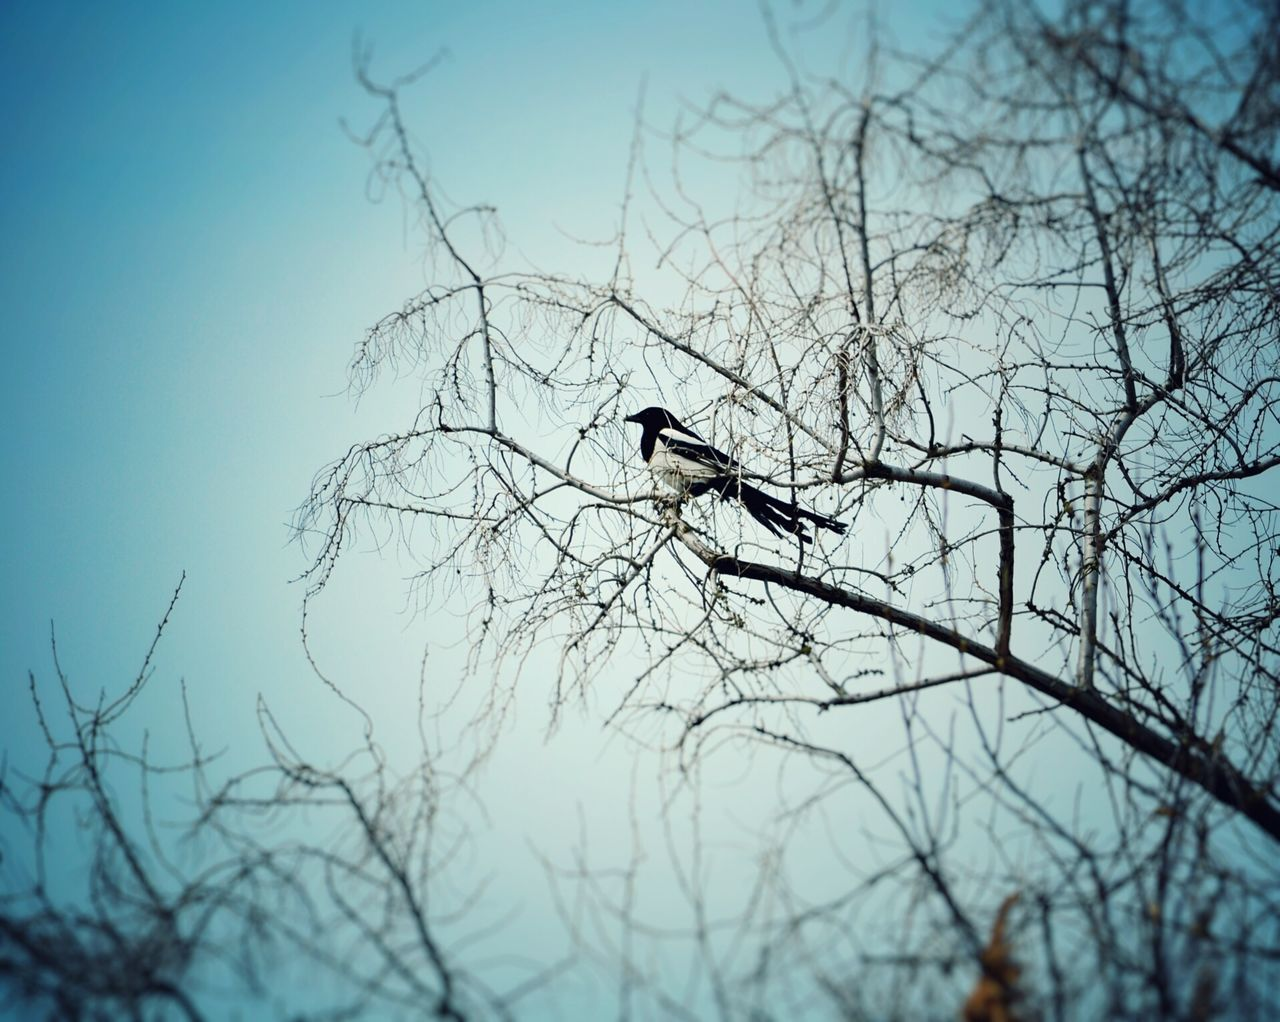 Bird Animals In The Wild Bare Tree Animal Wildlife Branch Animal Themes Perching Tree One Animal Nature Day Outdoors No People Magpie Magpie Bird Spring Time Spring Nature Springtime